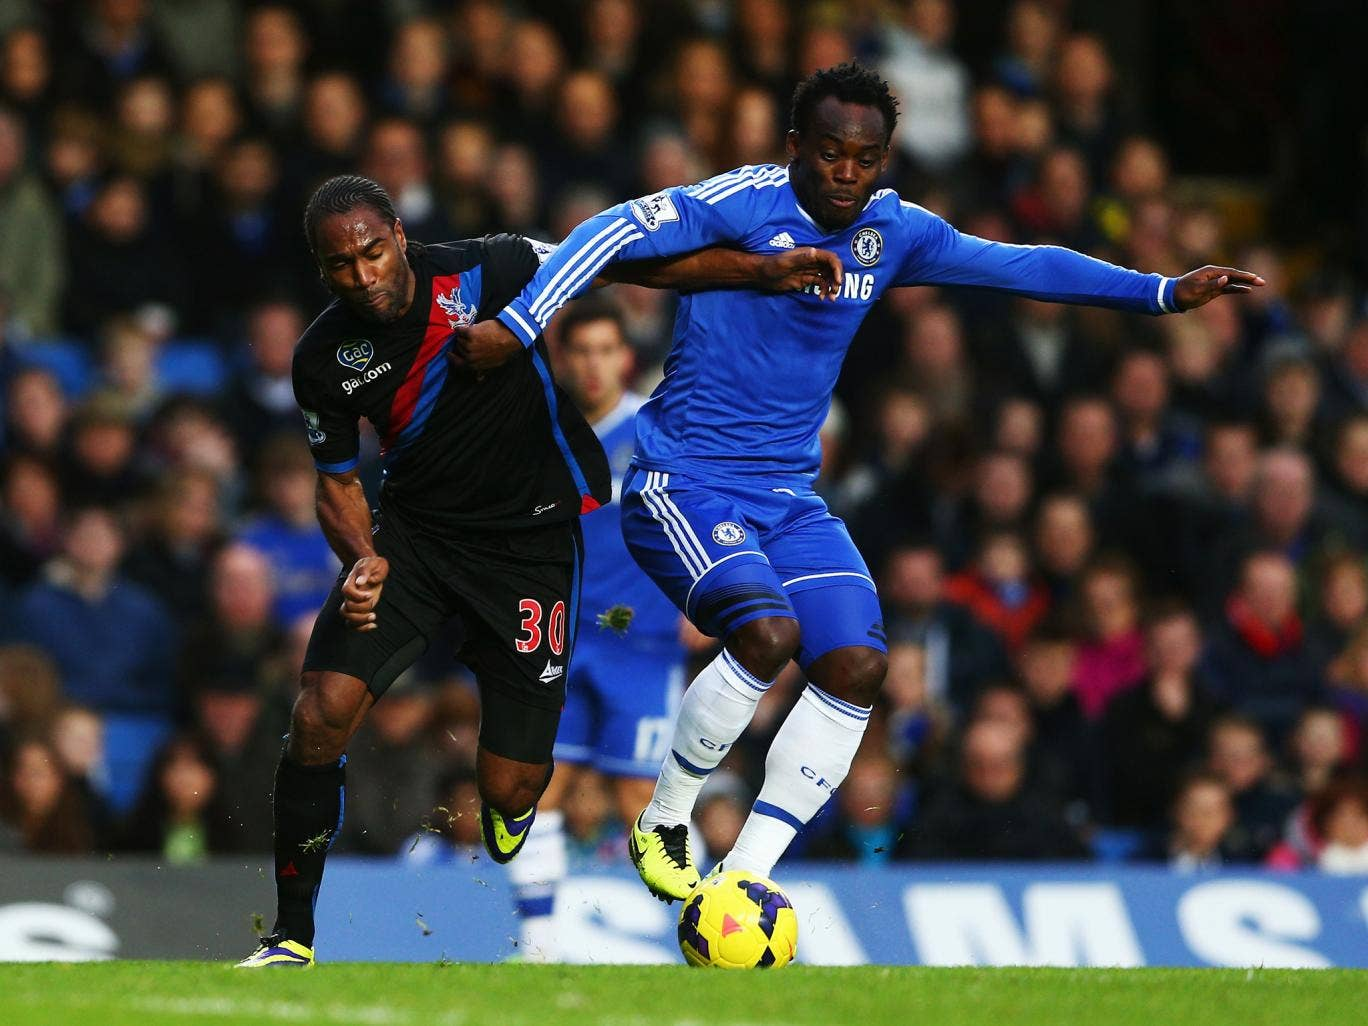 Michael Essien will leave Chelsea after agreeing a move to AC Milan